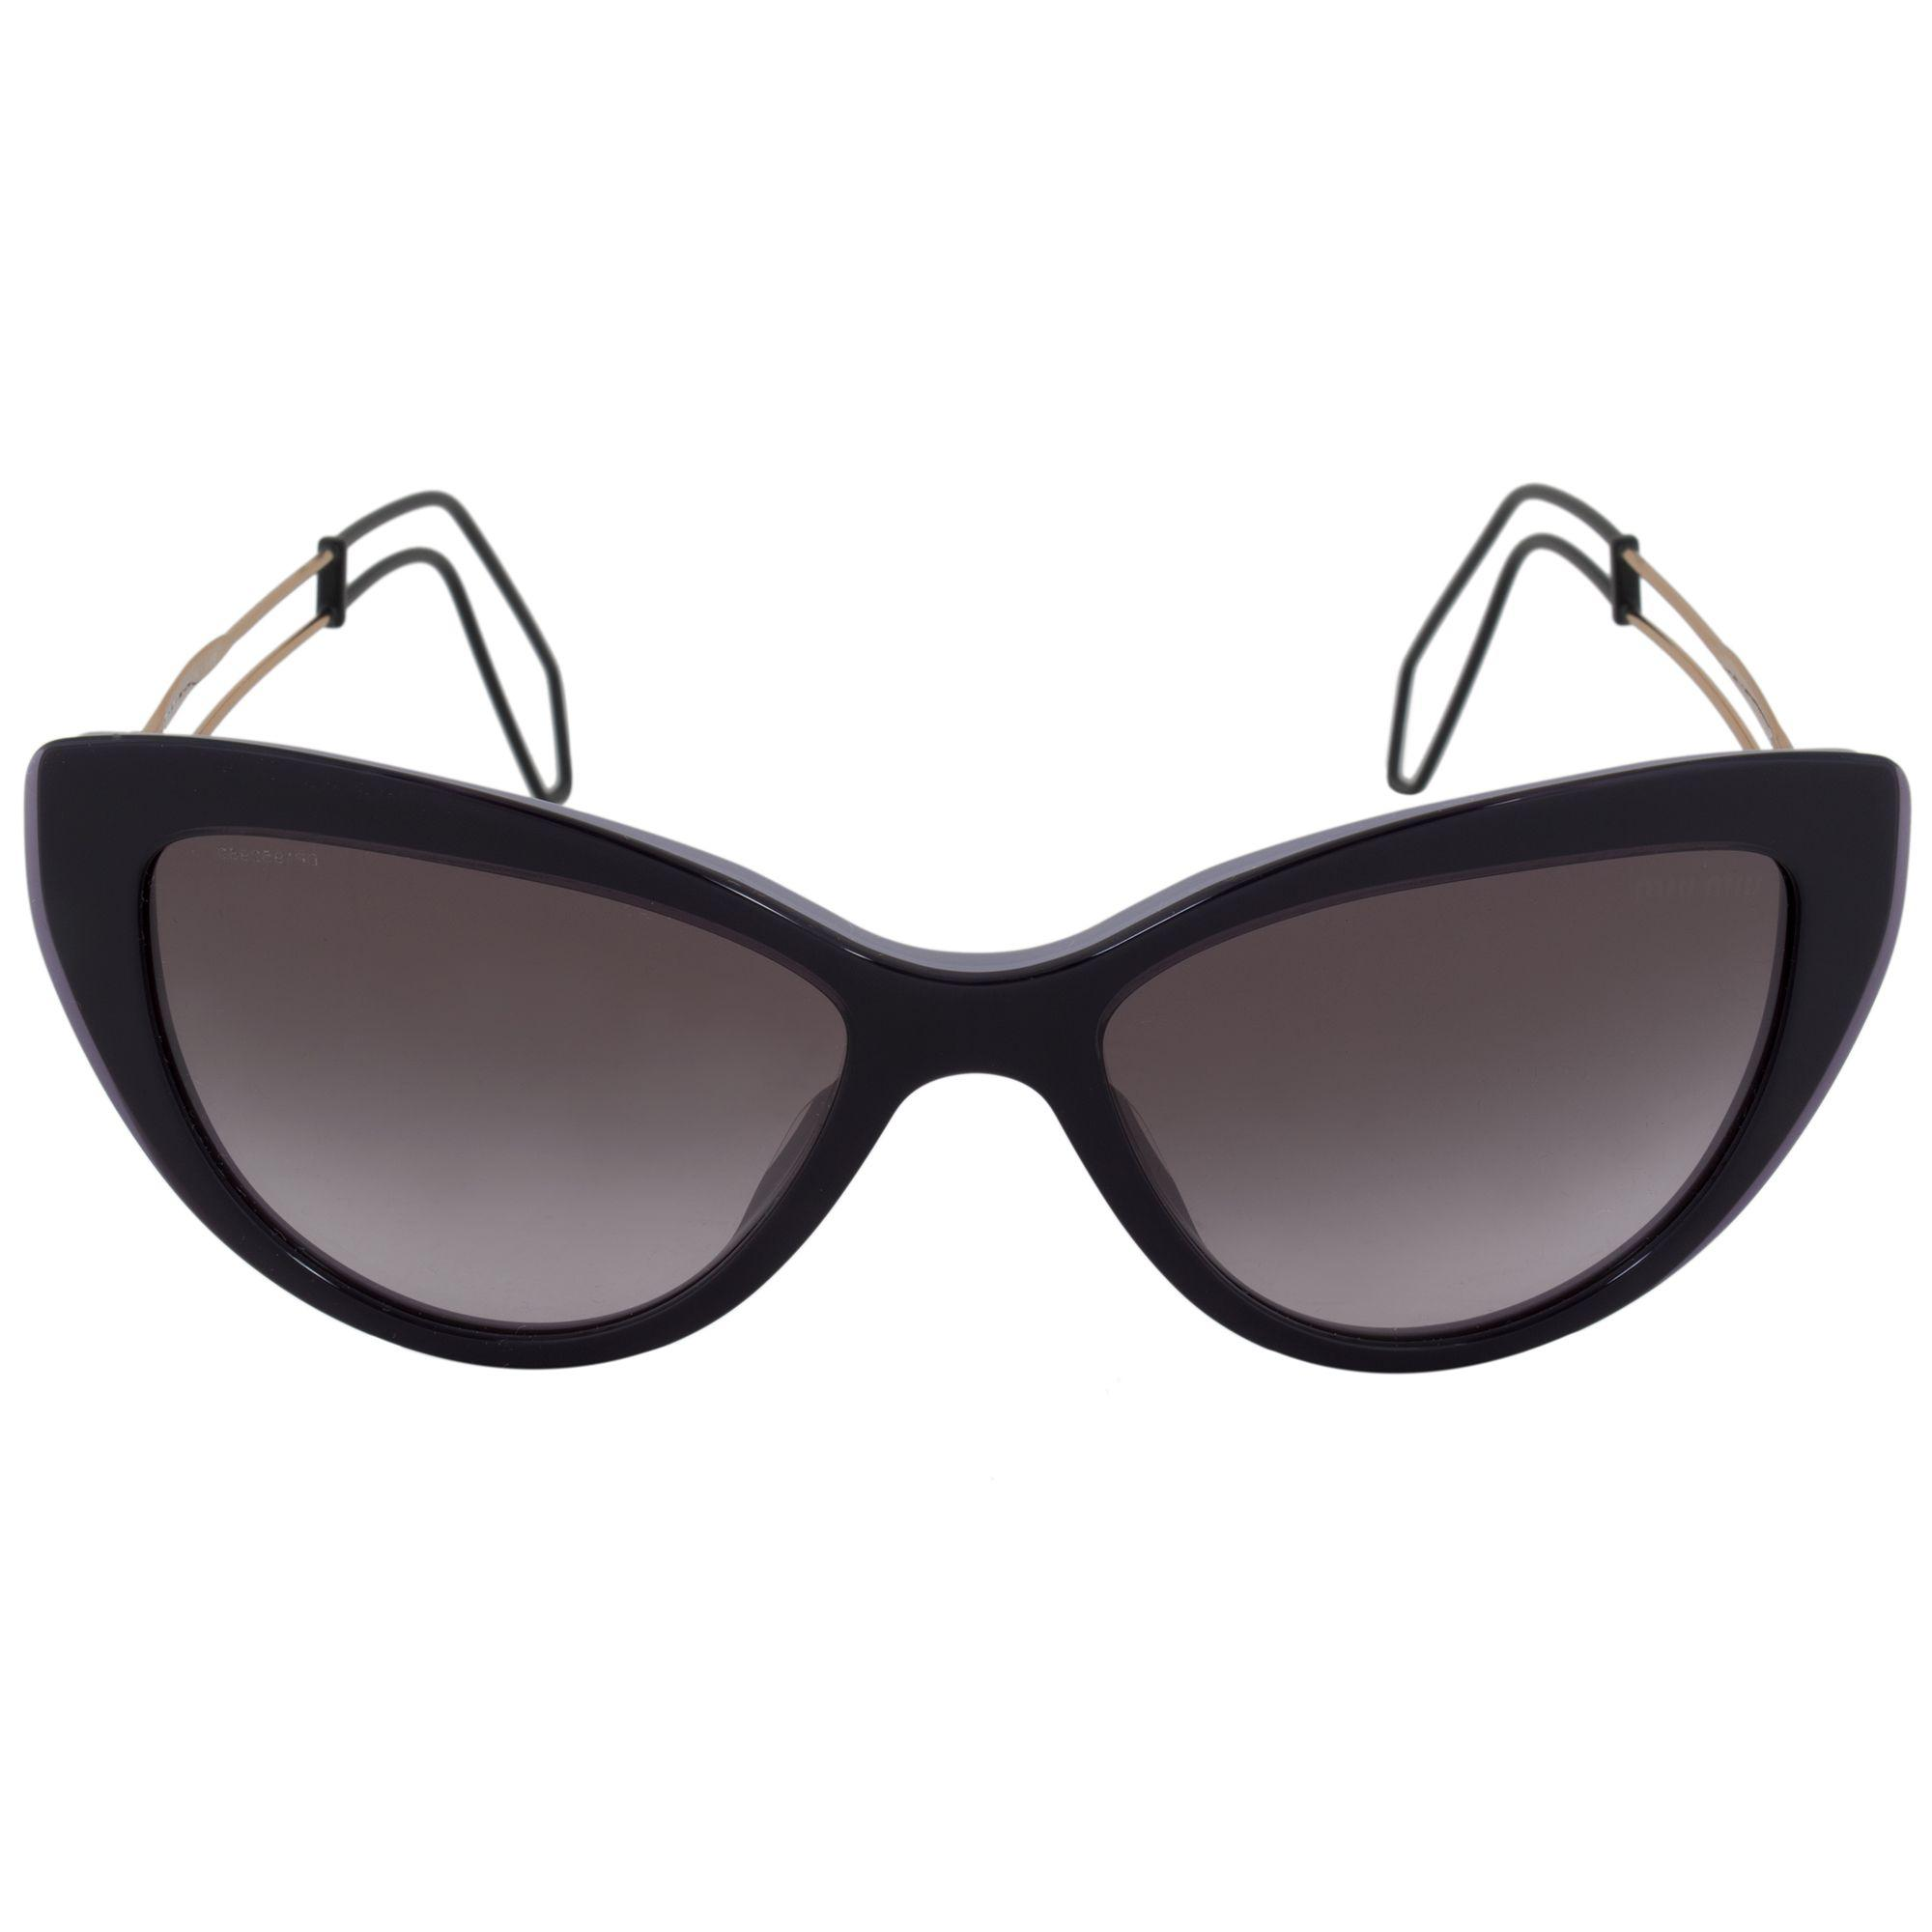 34e569a028e Lyst - Miu Miu Cat Eye Sunglasses Smu12rs Usn3e2 55